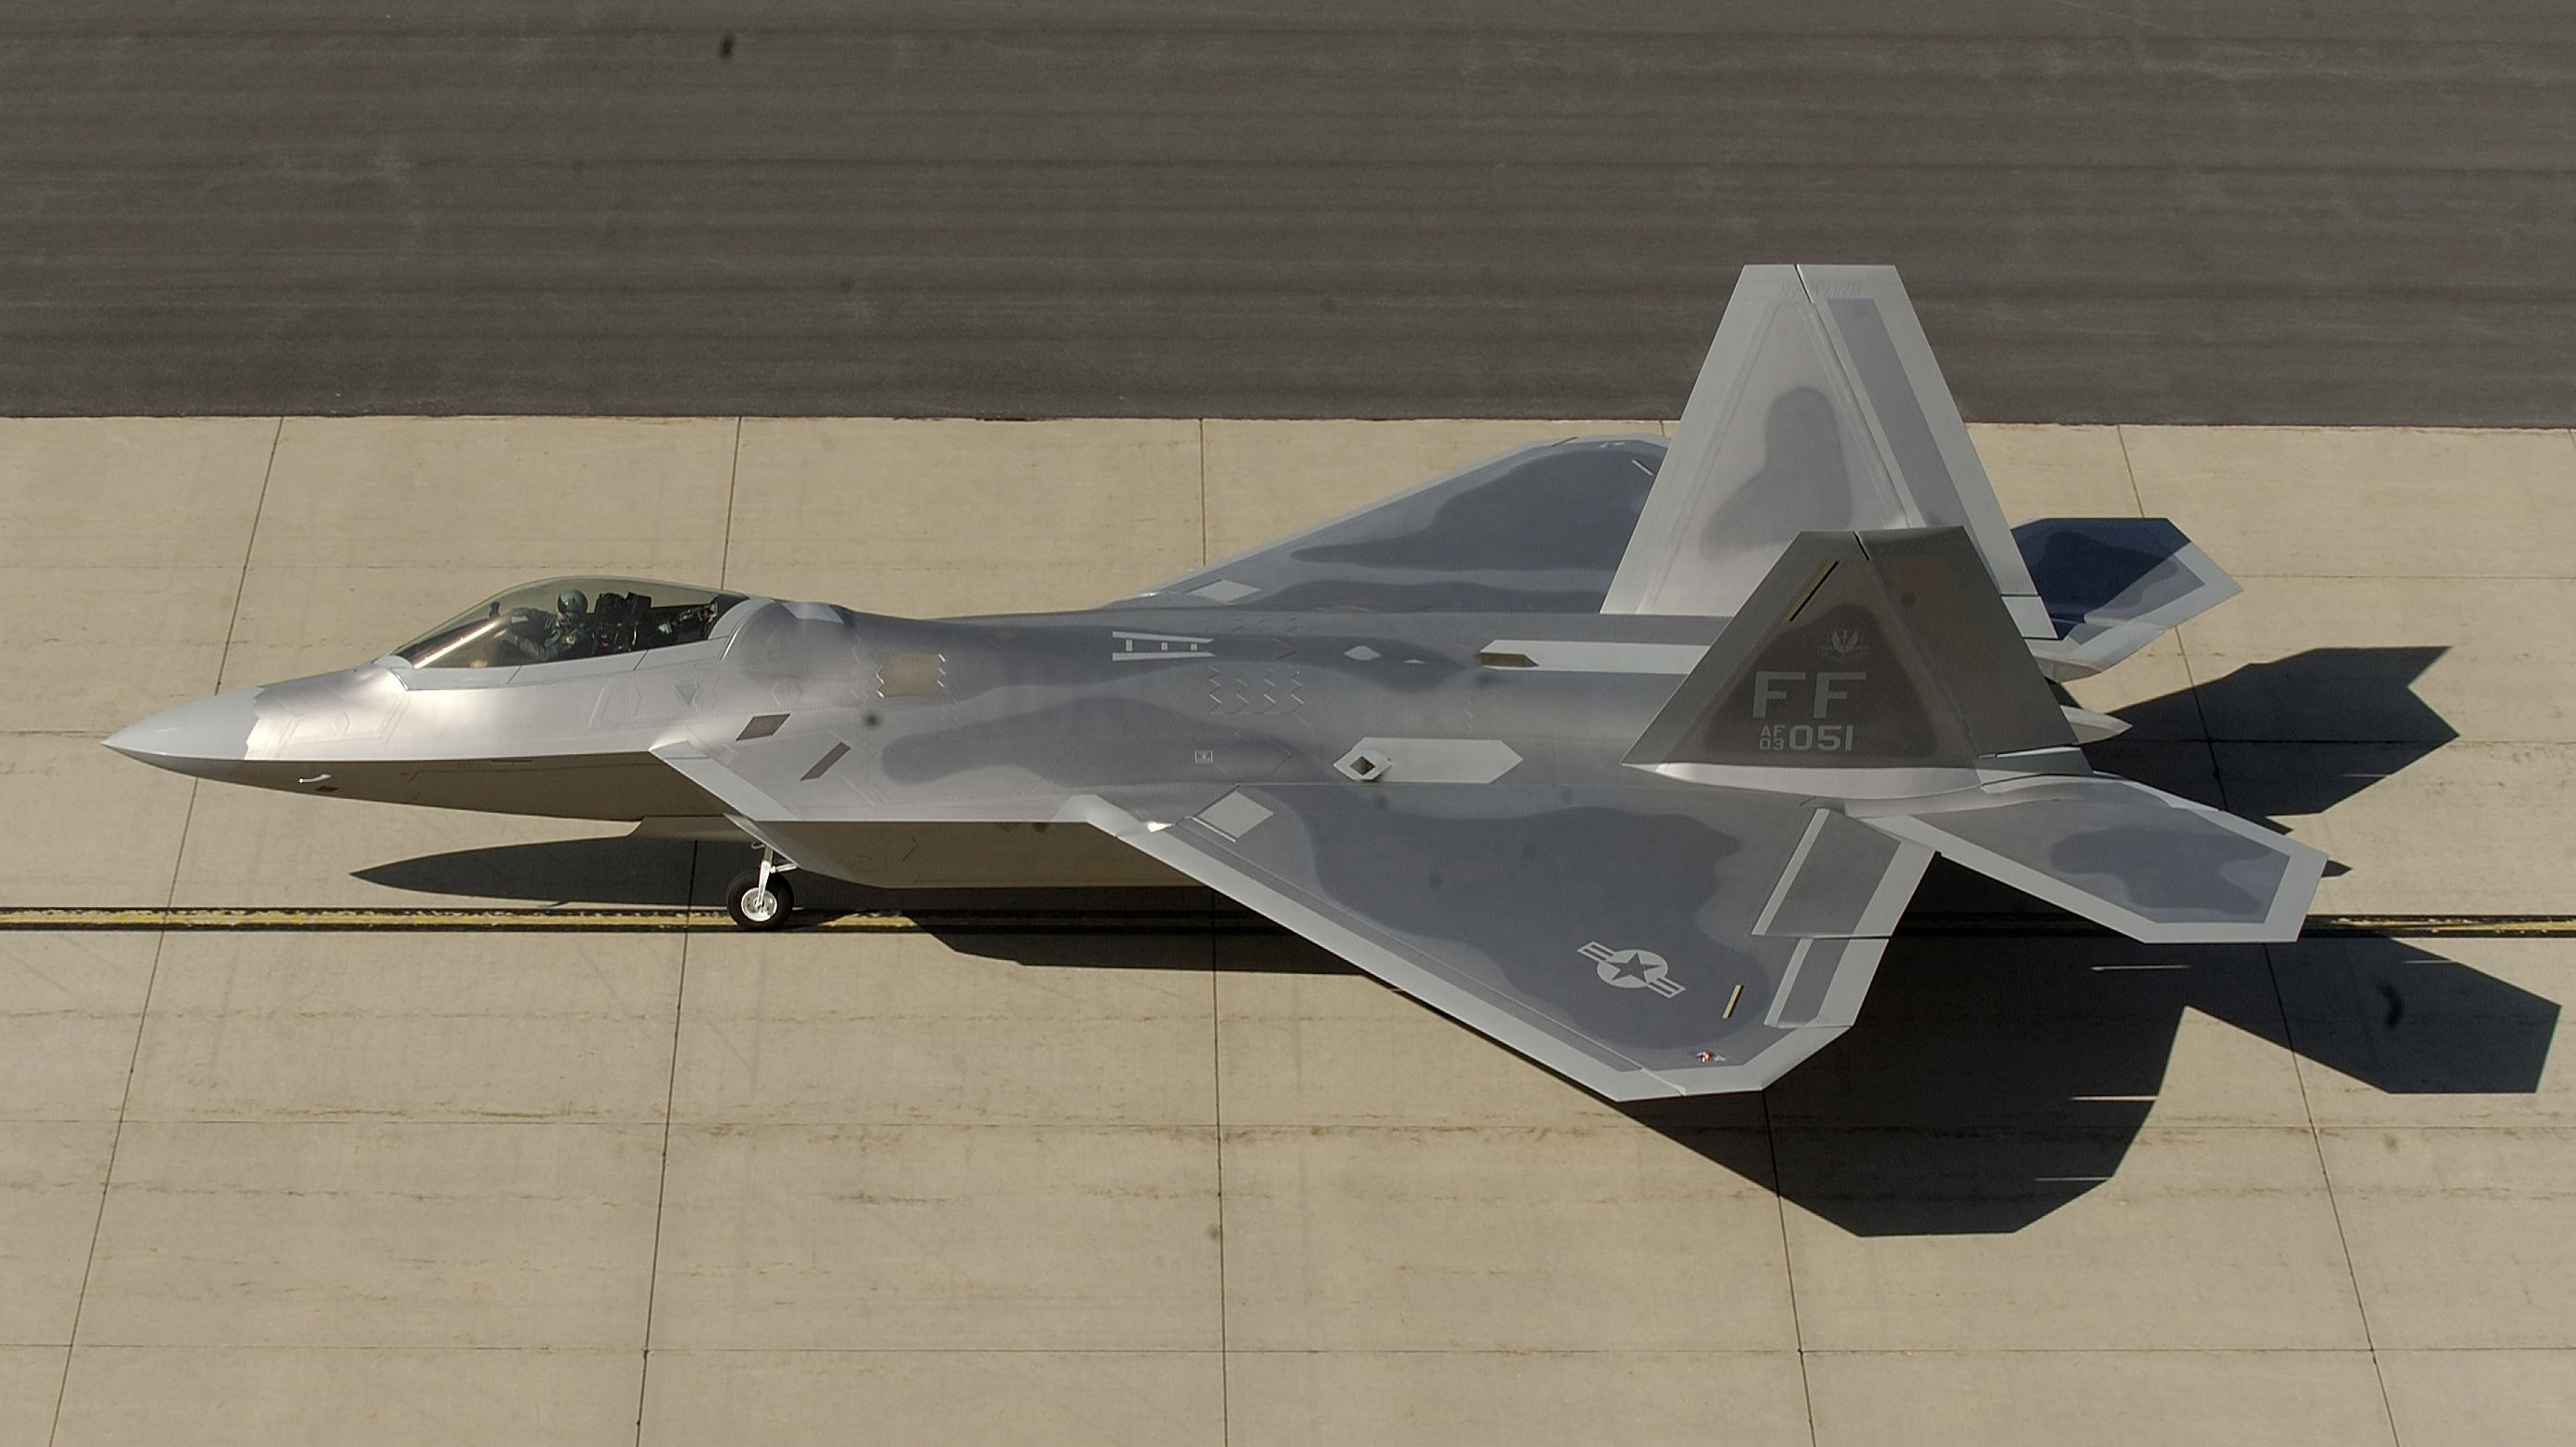 An F-22 taxis on a runway during an exercise.